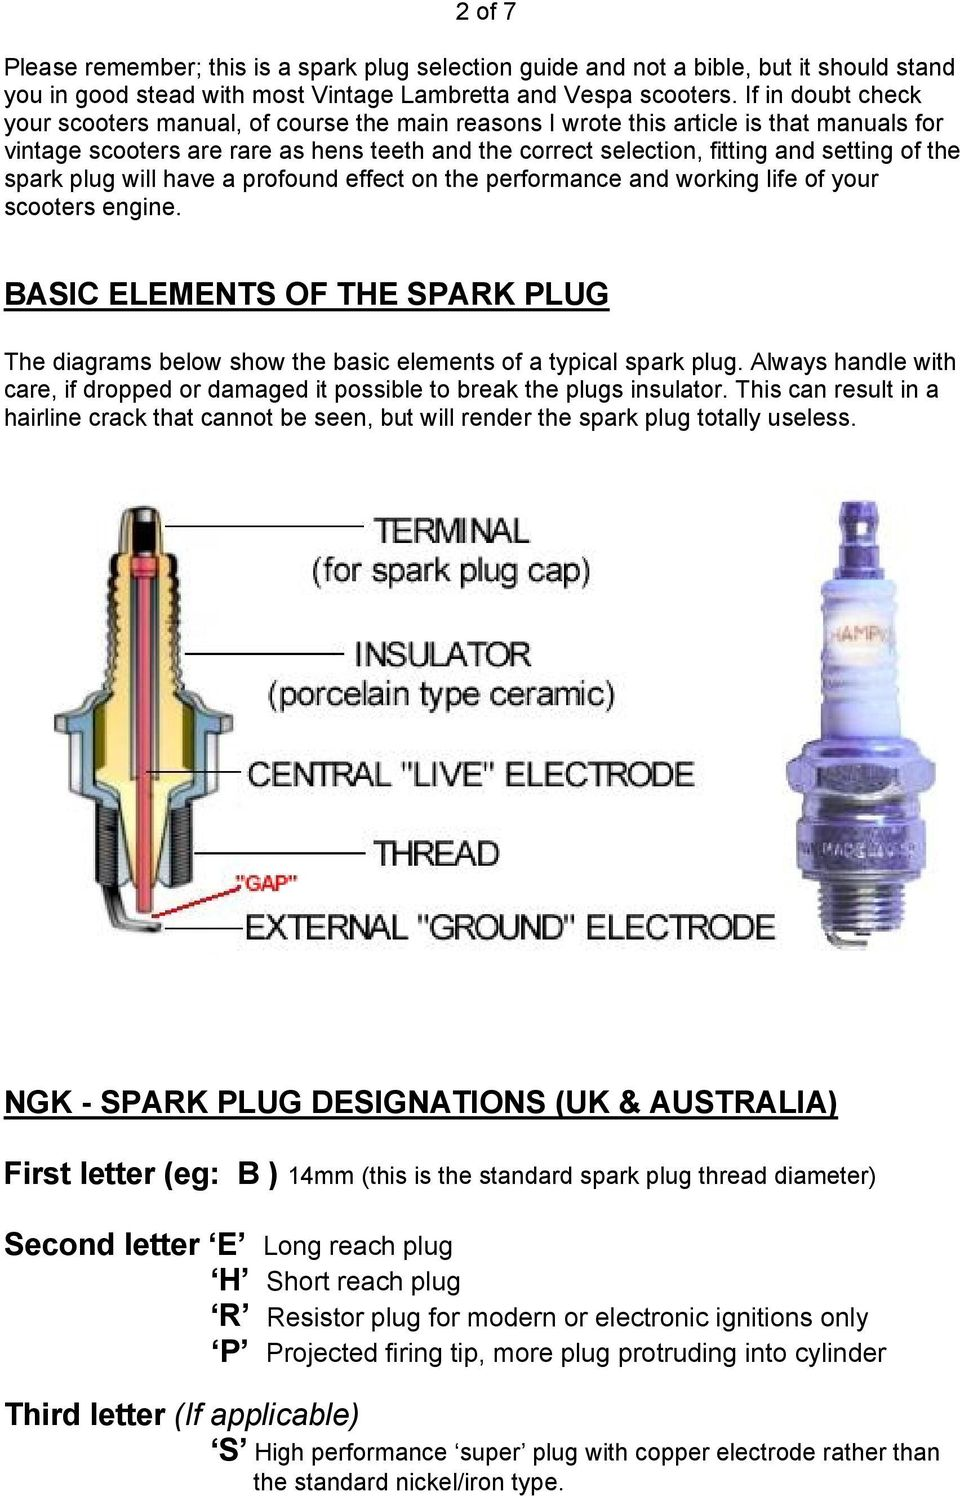 the spark plug will have a profound effect on the performance and working  life of your